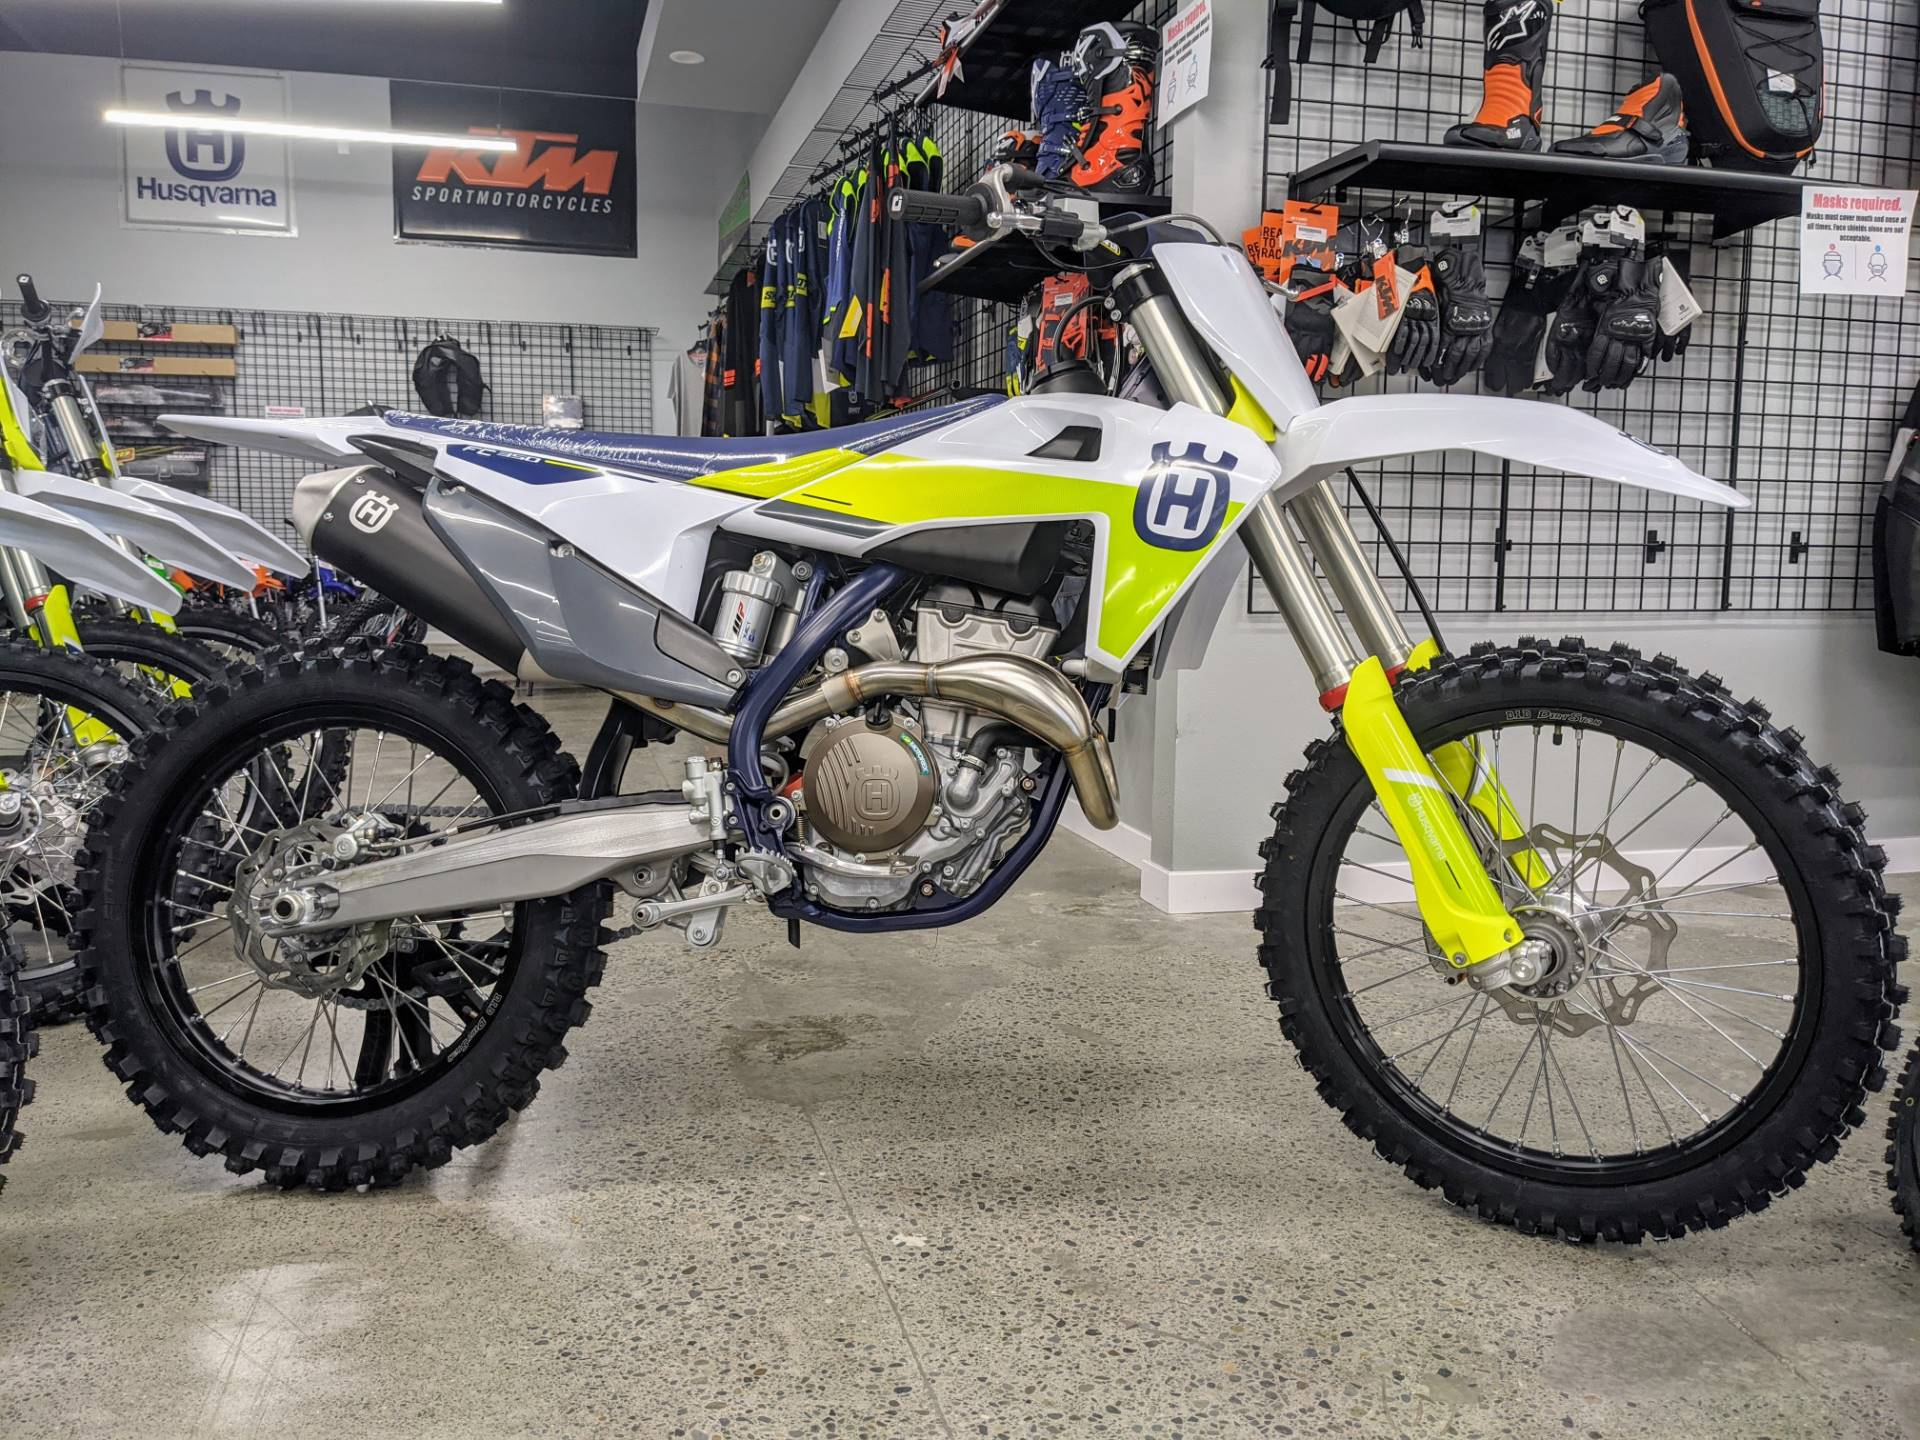 2021 Husqvarna FC 350 in Gresham, Oregon - Photo 1